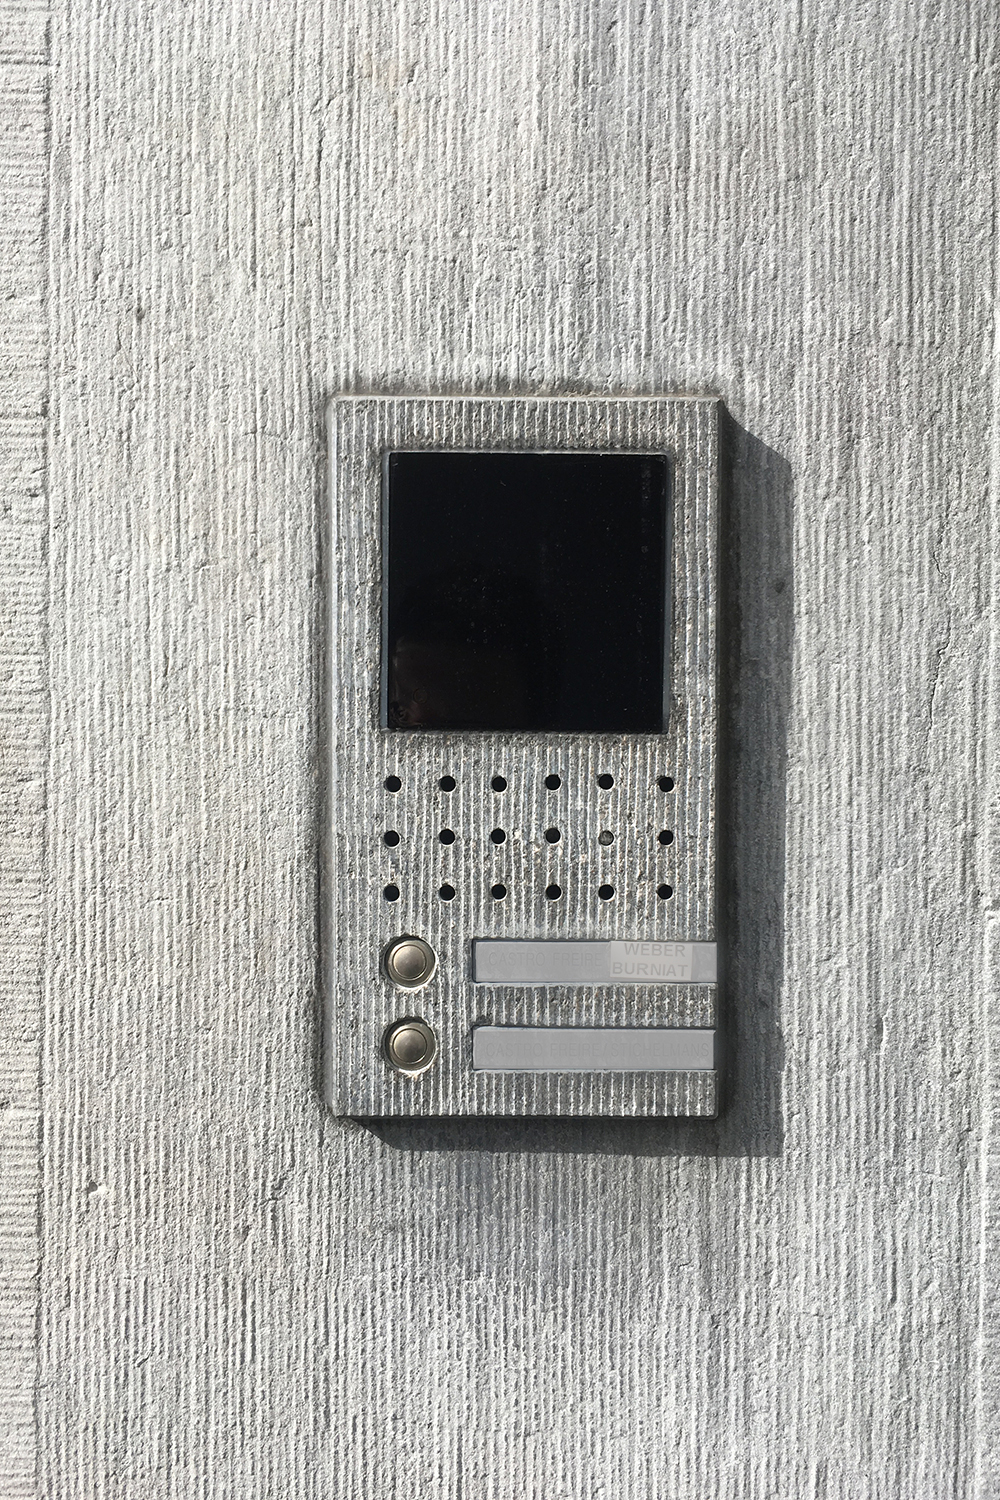 Belgian stone intercom in Antwerp. Perfection.